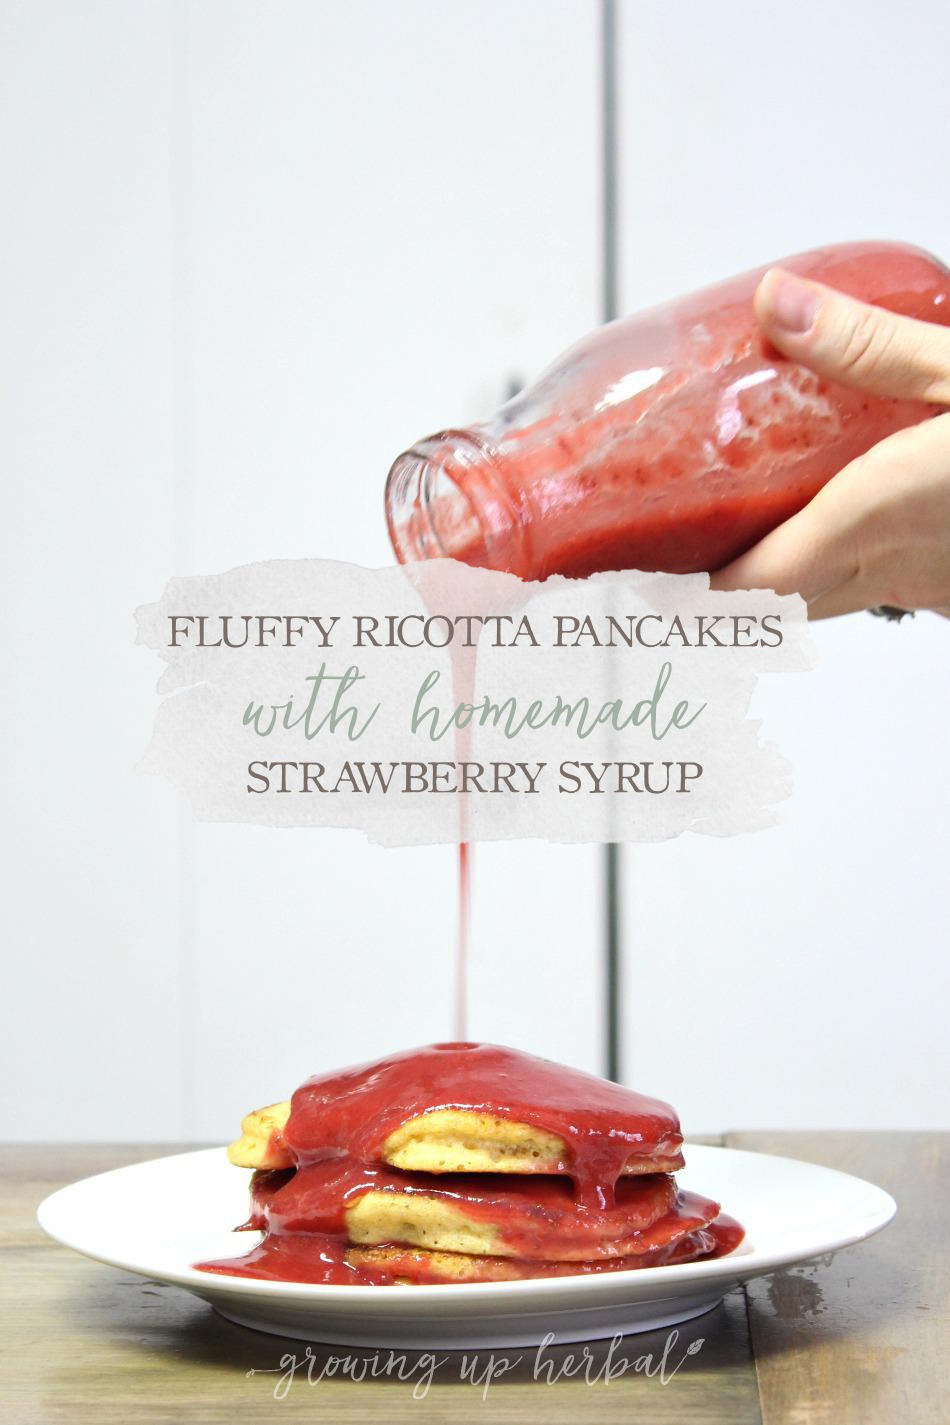 Fluffy Ricotta Pancakes With Homemade Strawberry Syrup